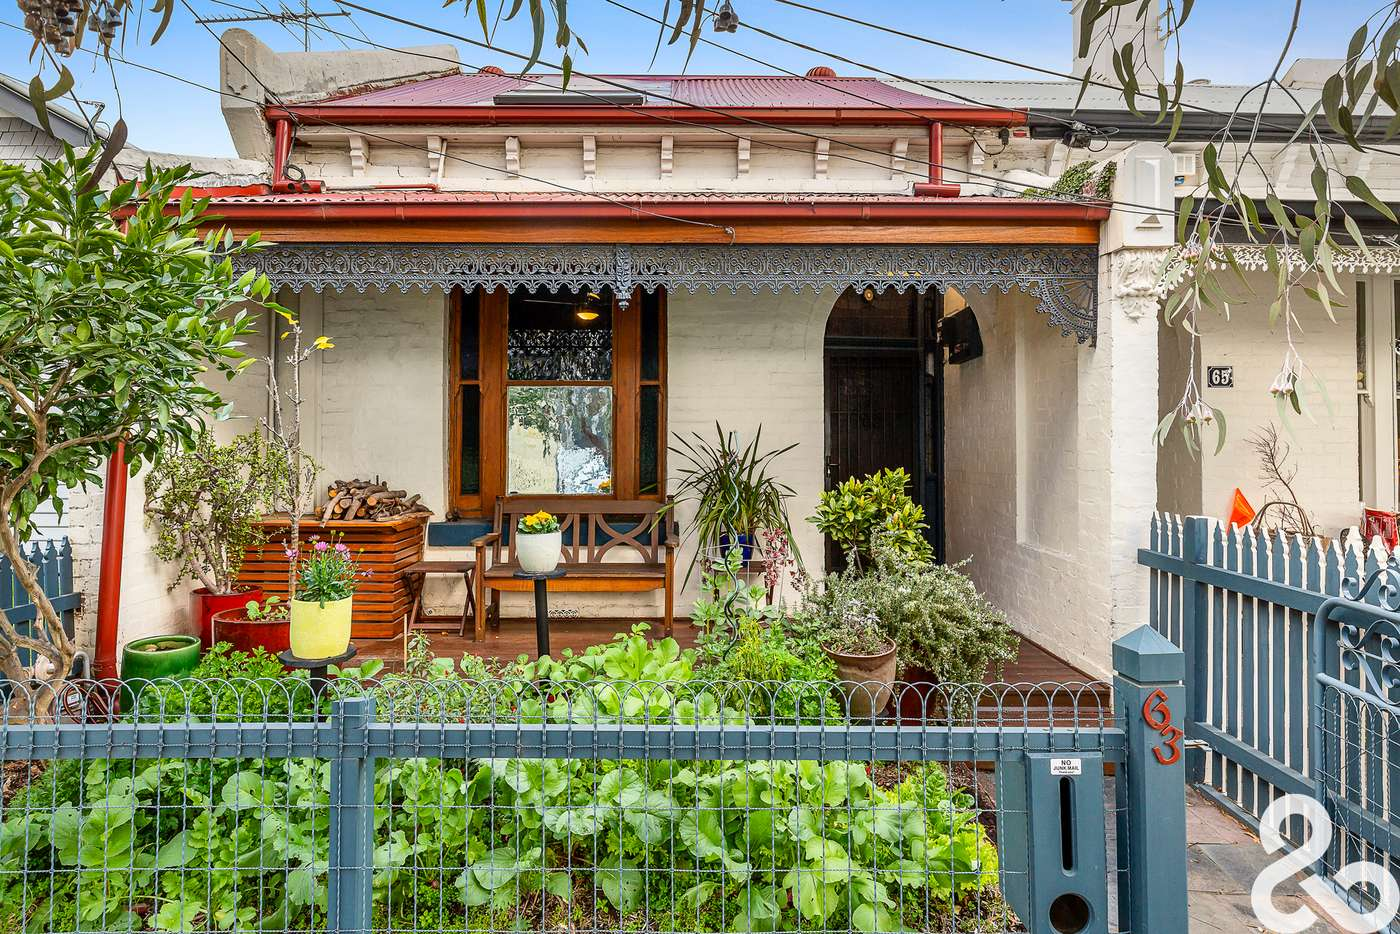 Main view of Homely house listing, 63 Gladstone Avenue, Northcote VIC 3070